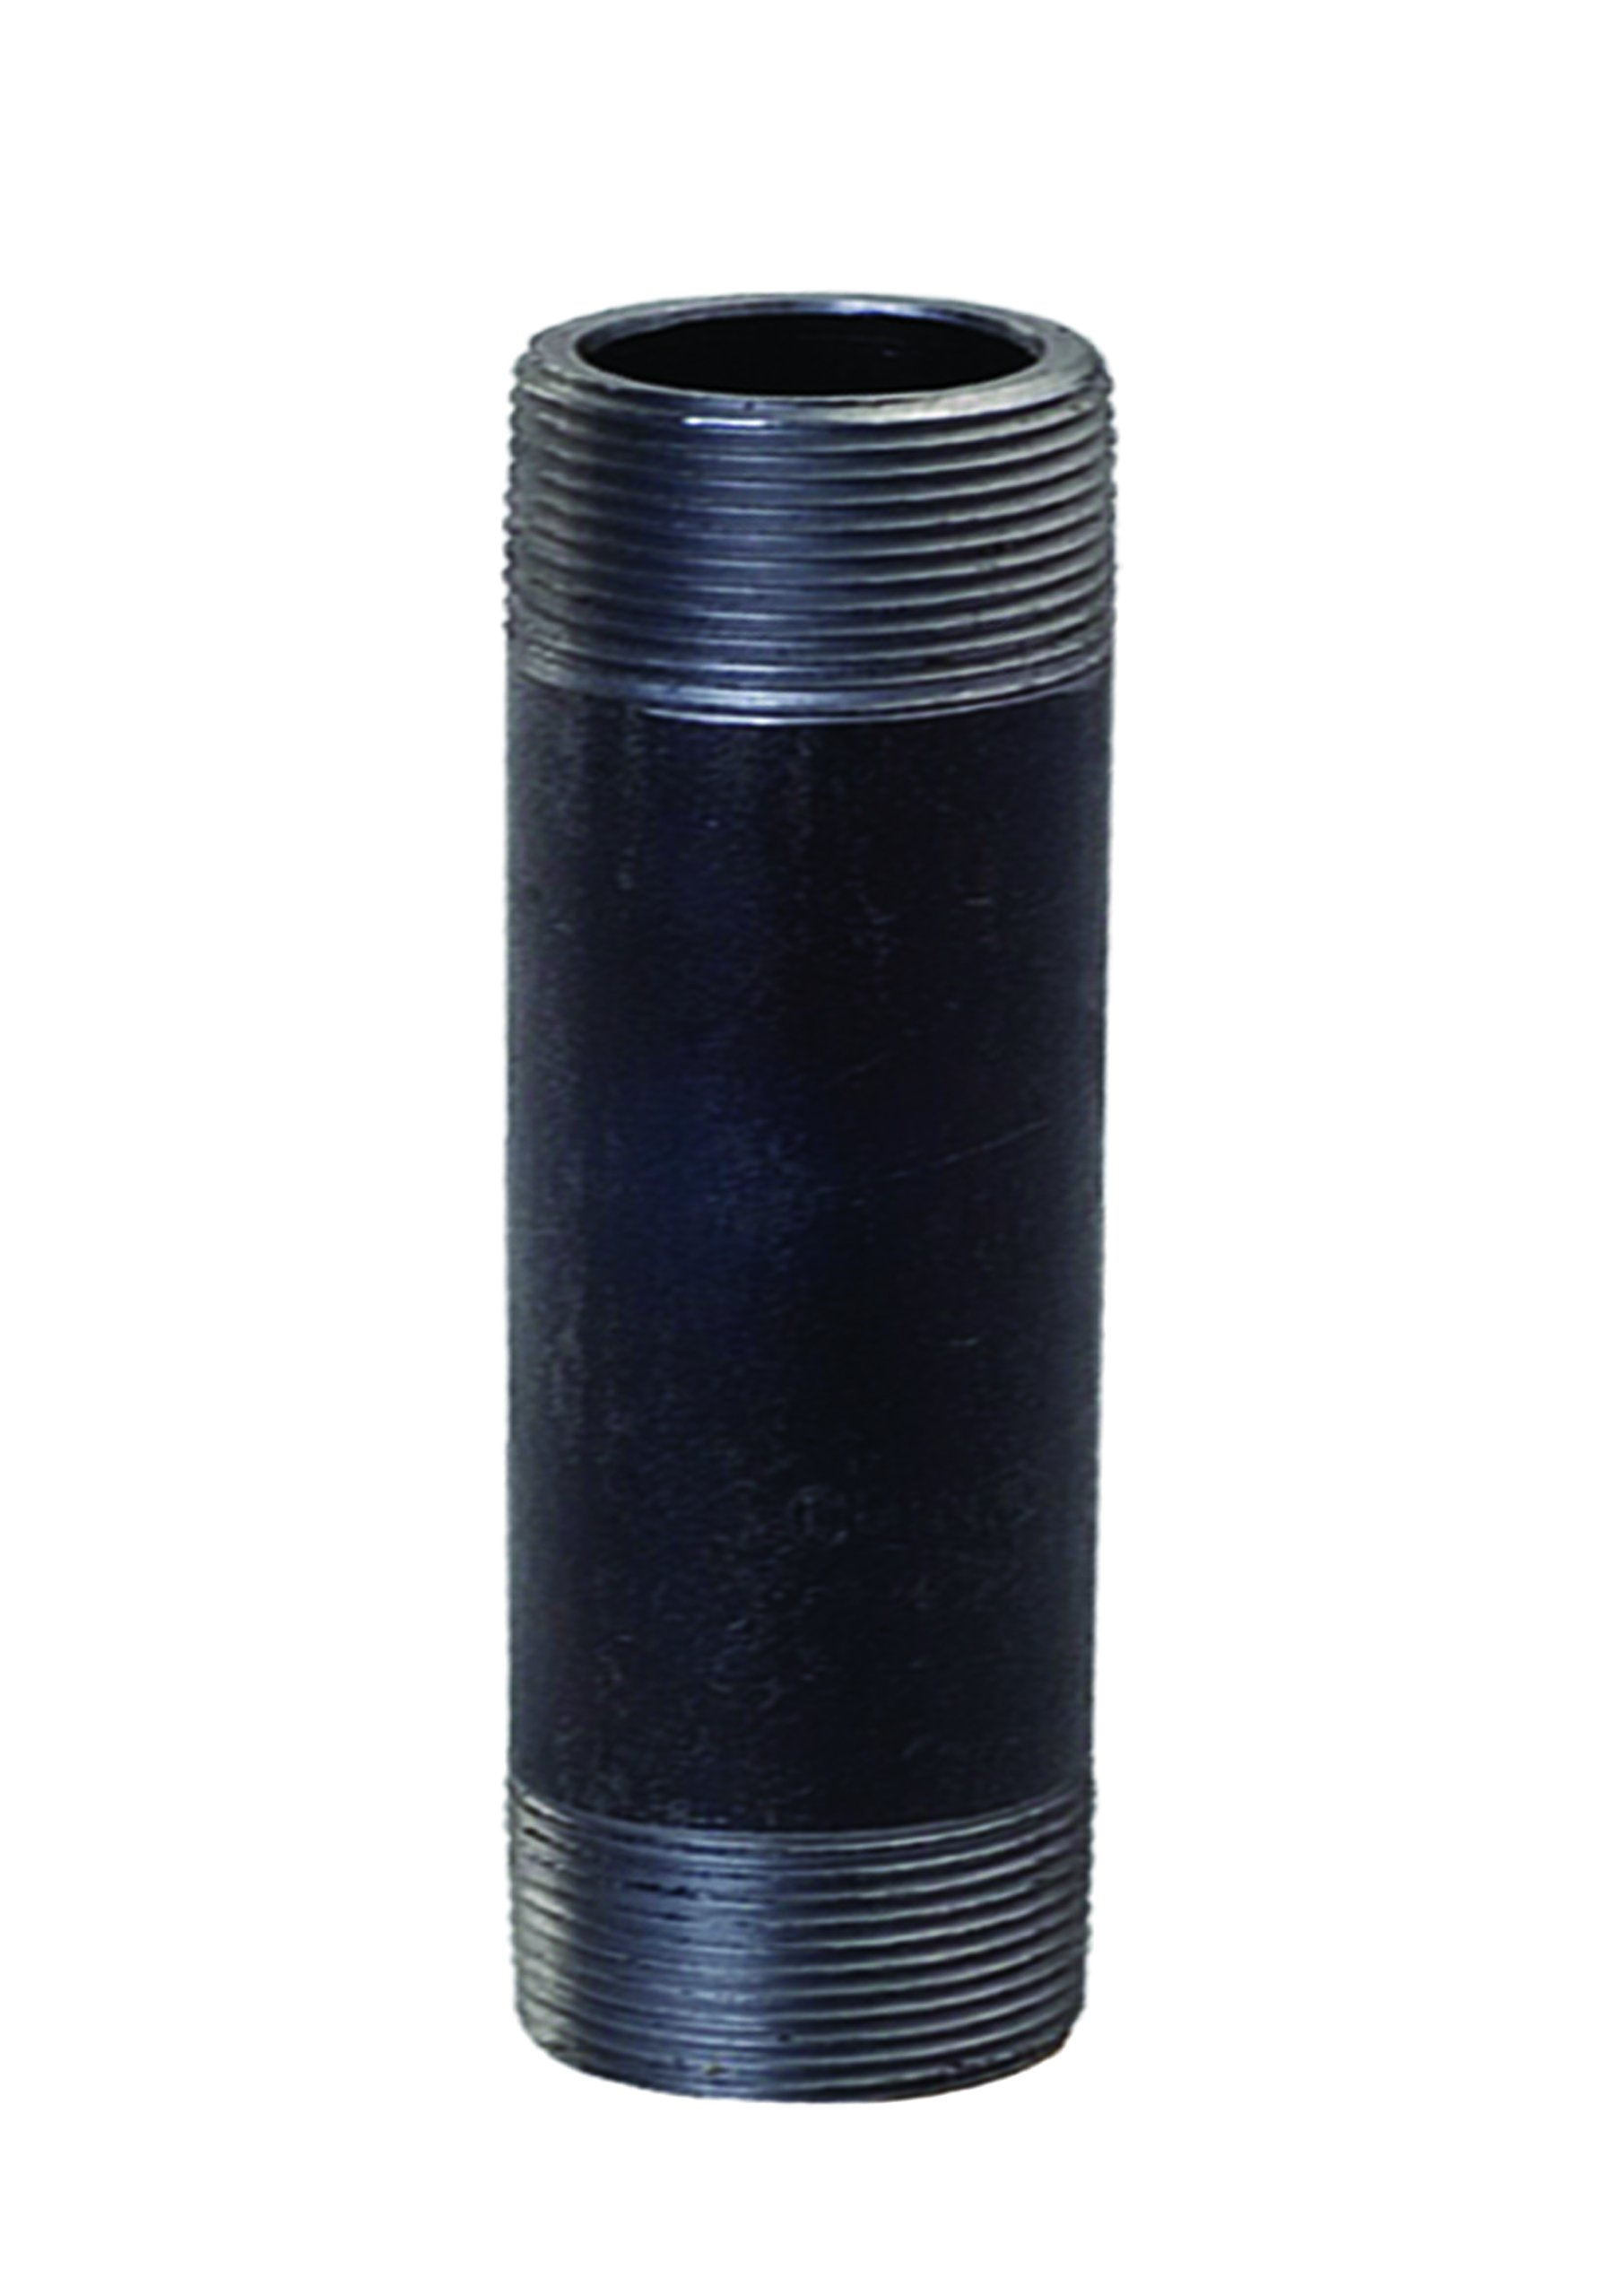 Everflow Supplies NPBL2512 12'' Long Black Steel Nipple Pipe Fitting with 2-1/2'' Nominal Size Diameter